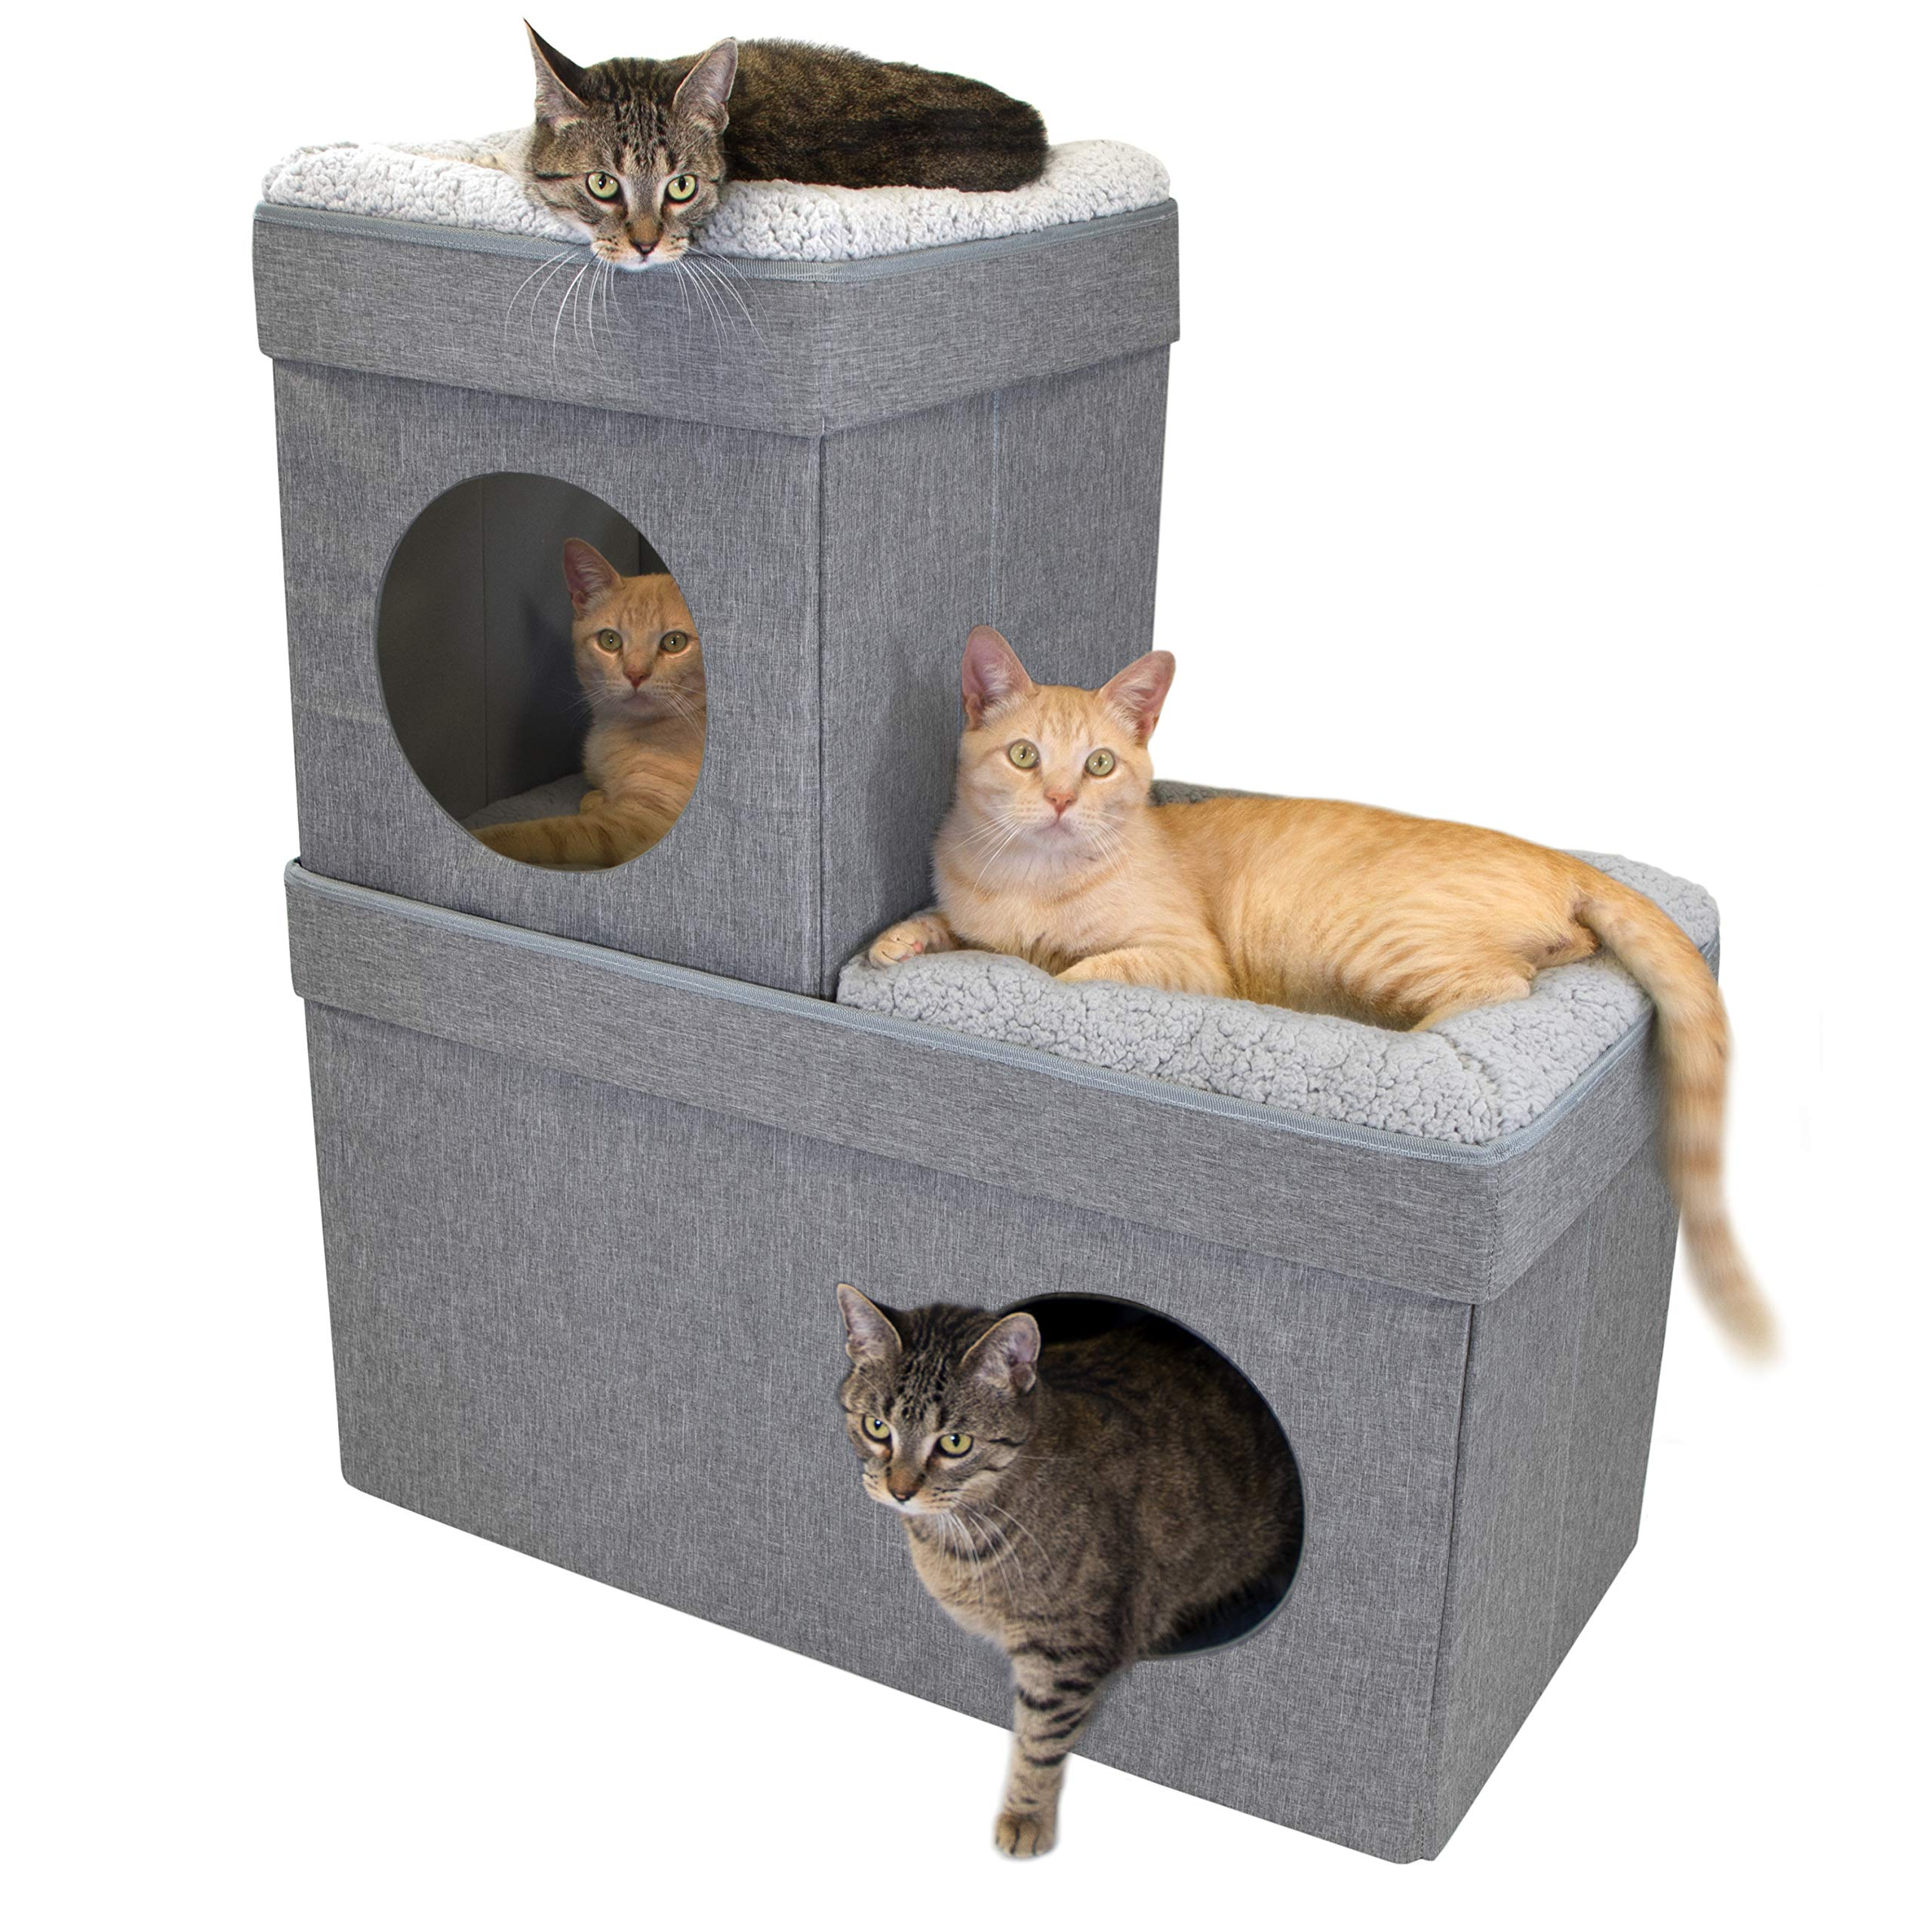 Kitty City Large Stackable Cat Condo, Cat Cube, Cat House, Pop Up Bed, Cat Ottoman by Kitty City